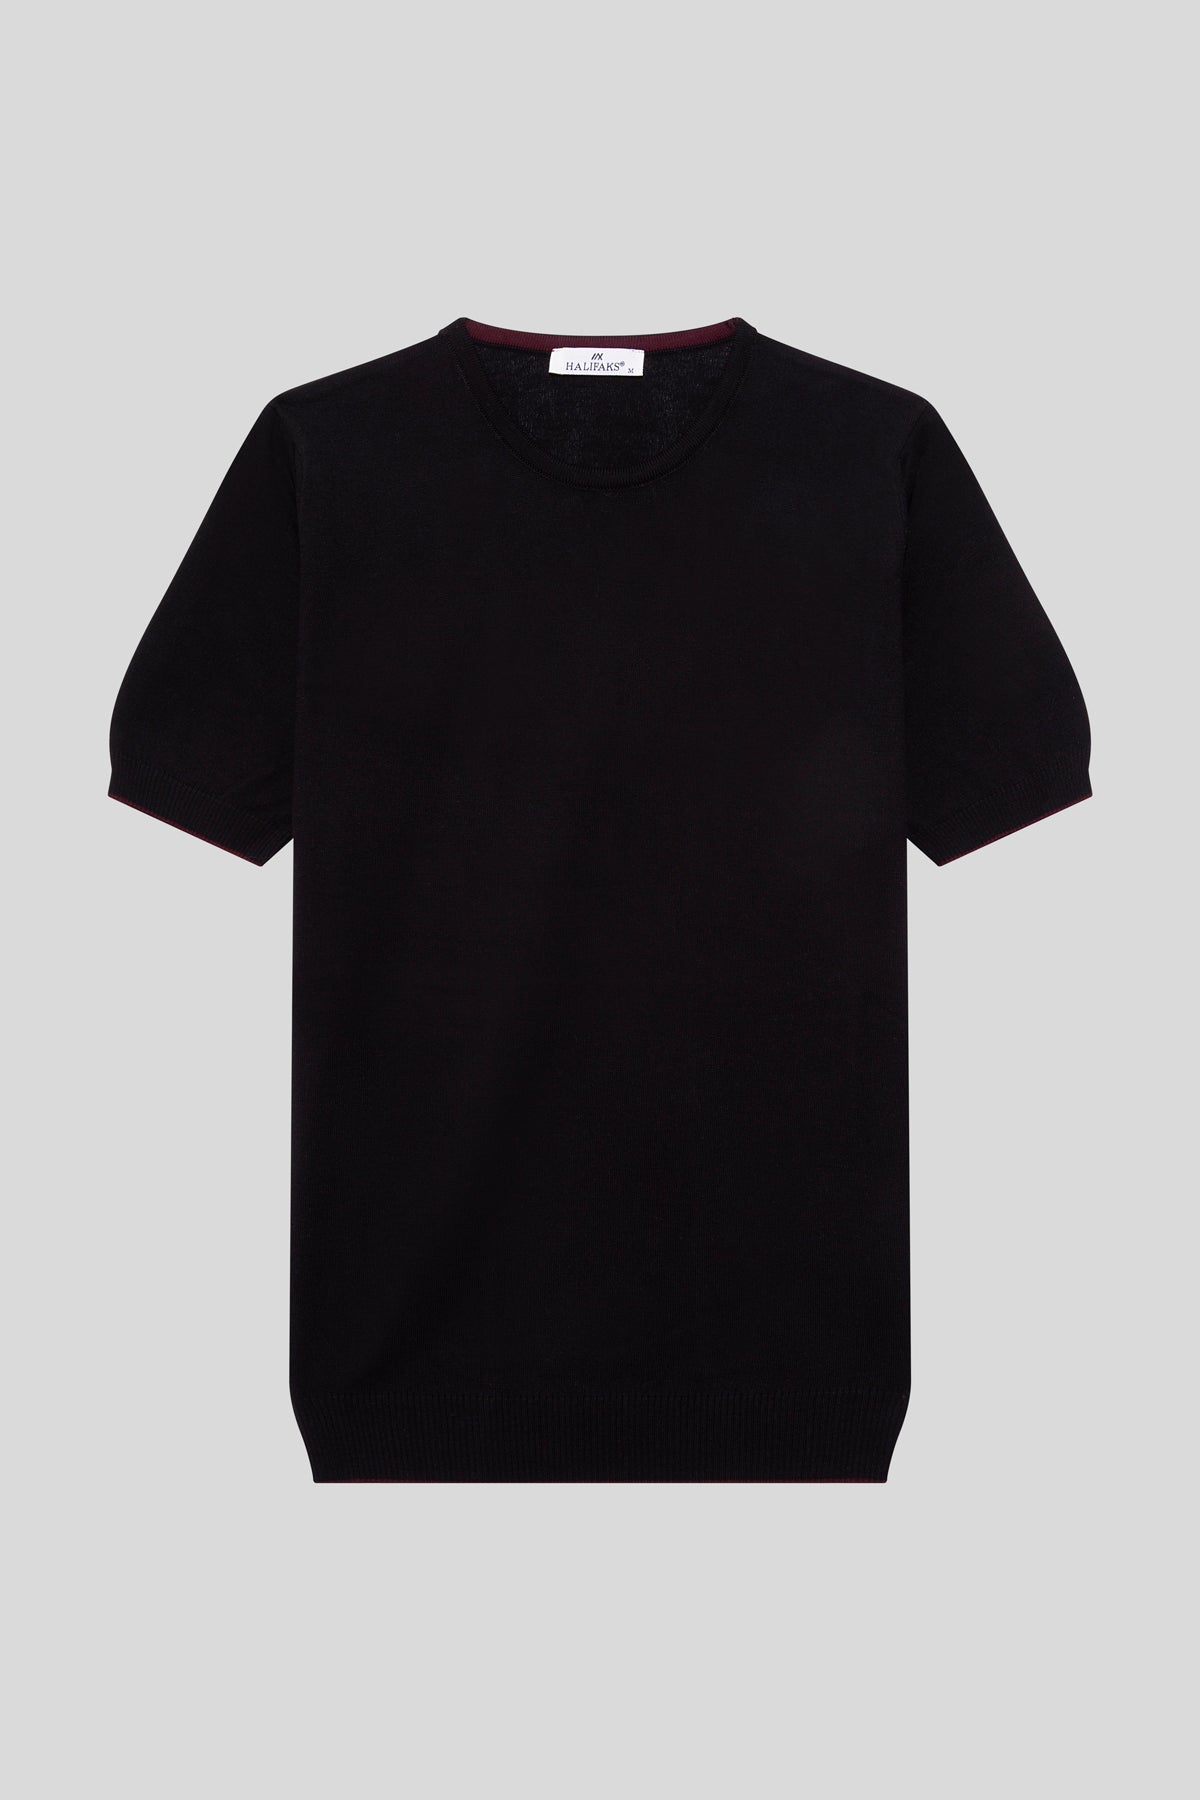 Crew Neck Cotton Black T-Shirt